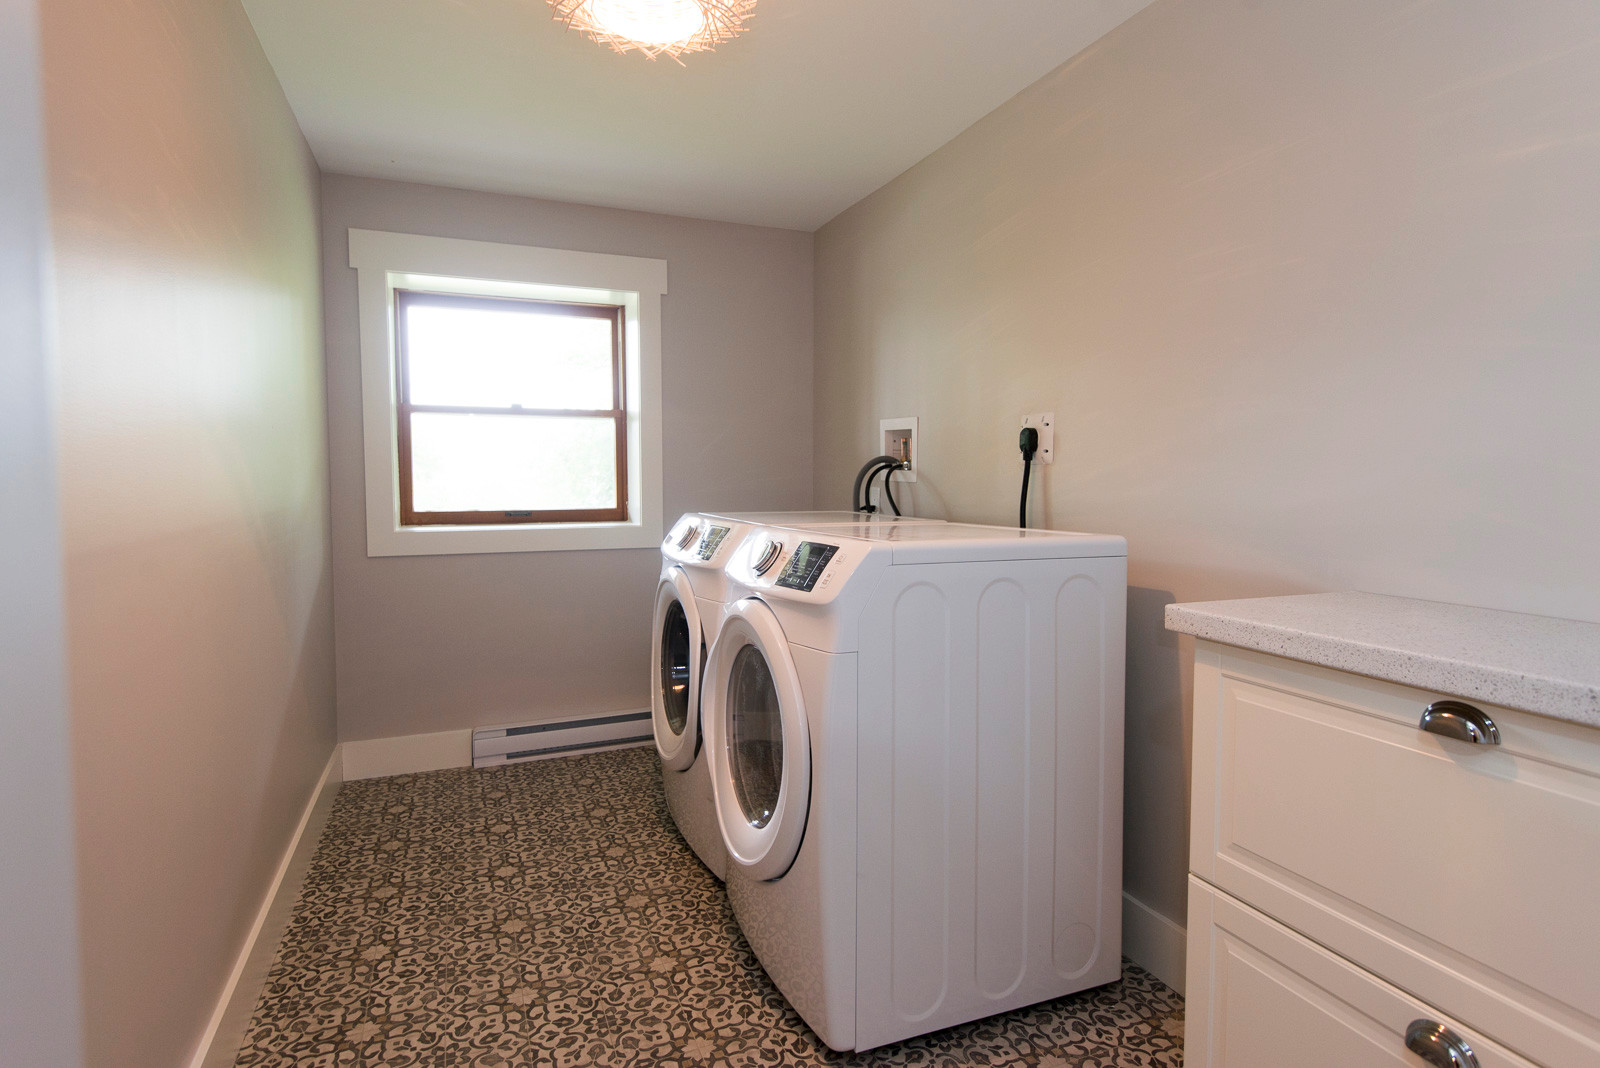 This large laundry room was created in the basement development of this 100 year old home.